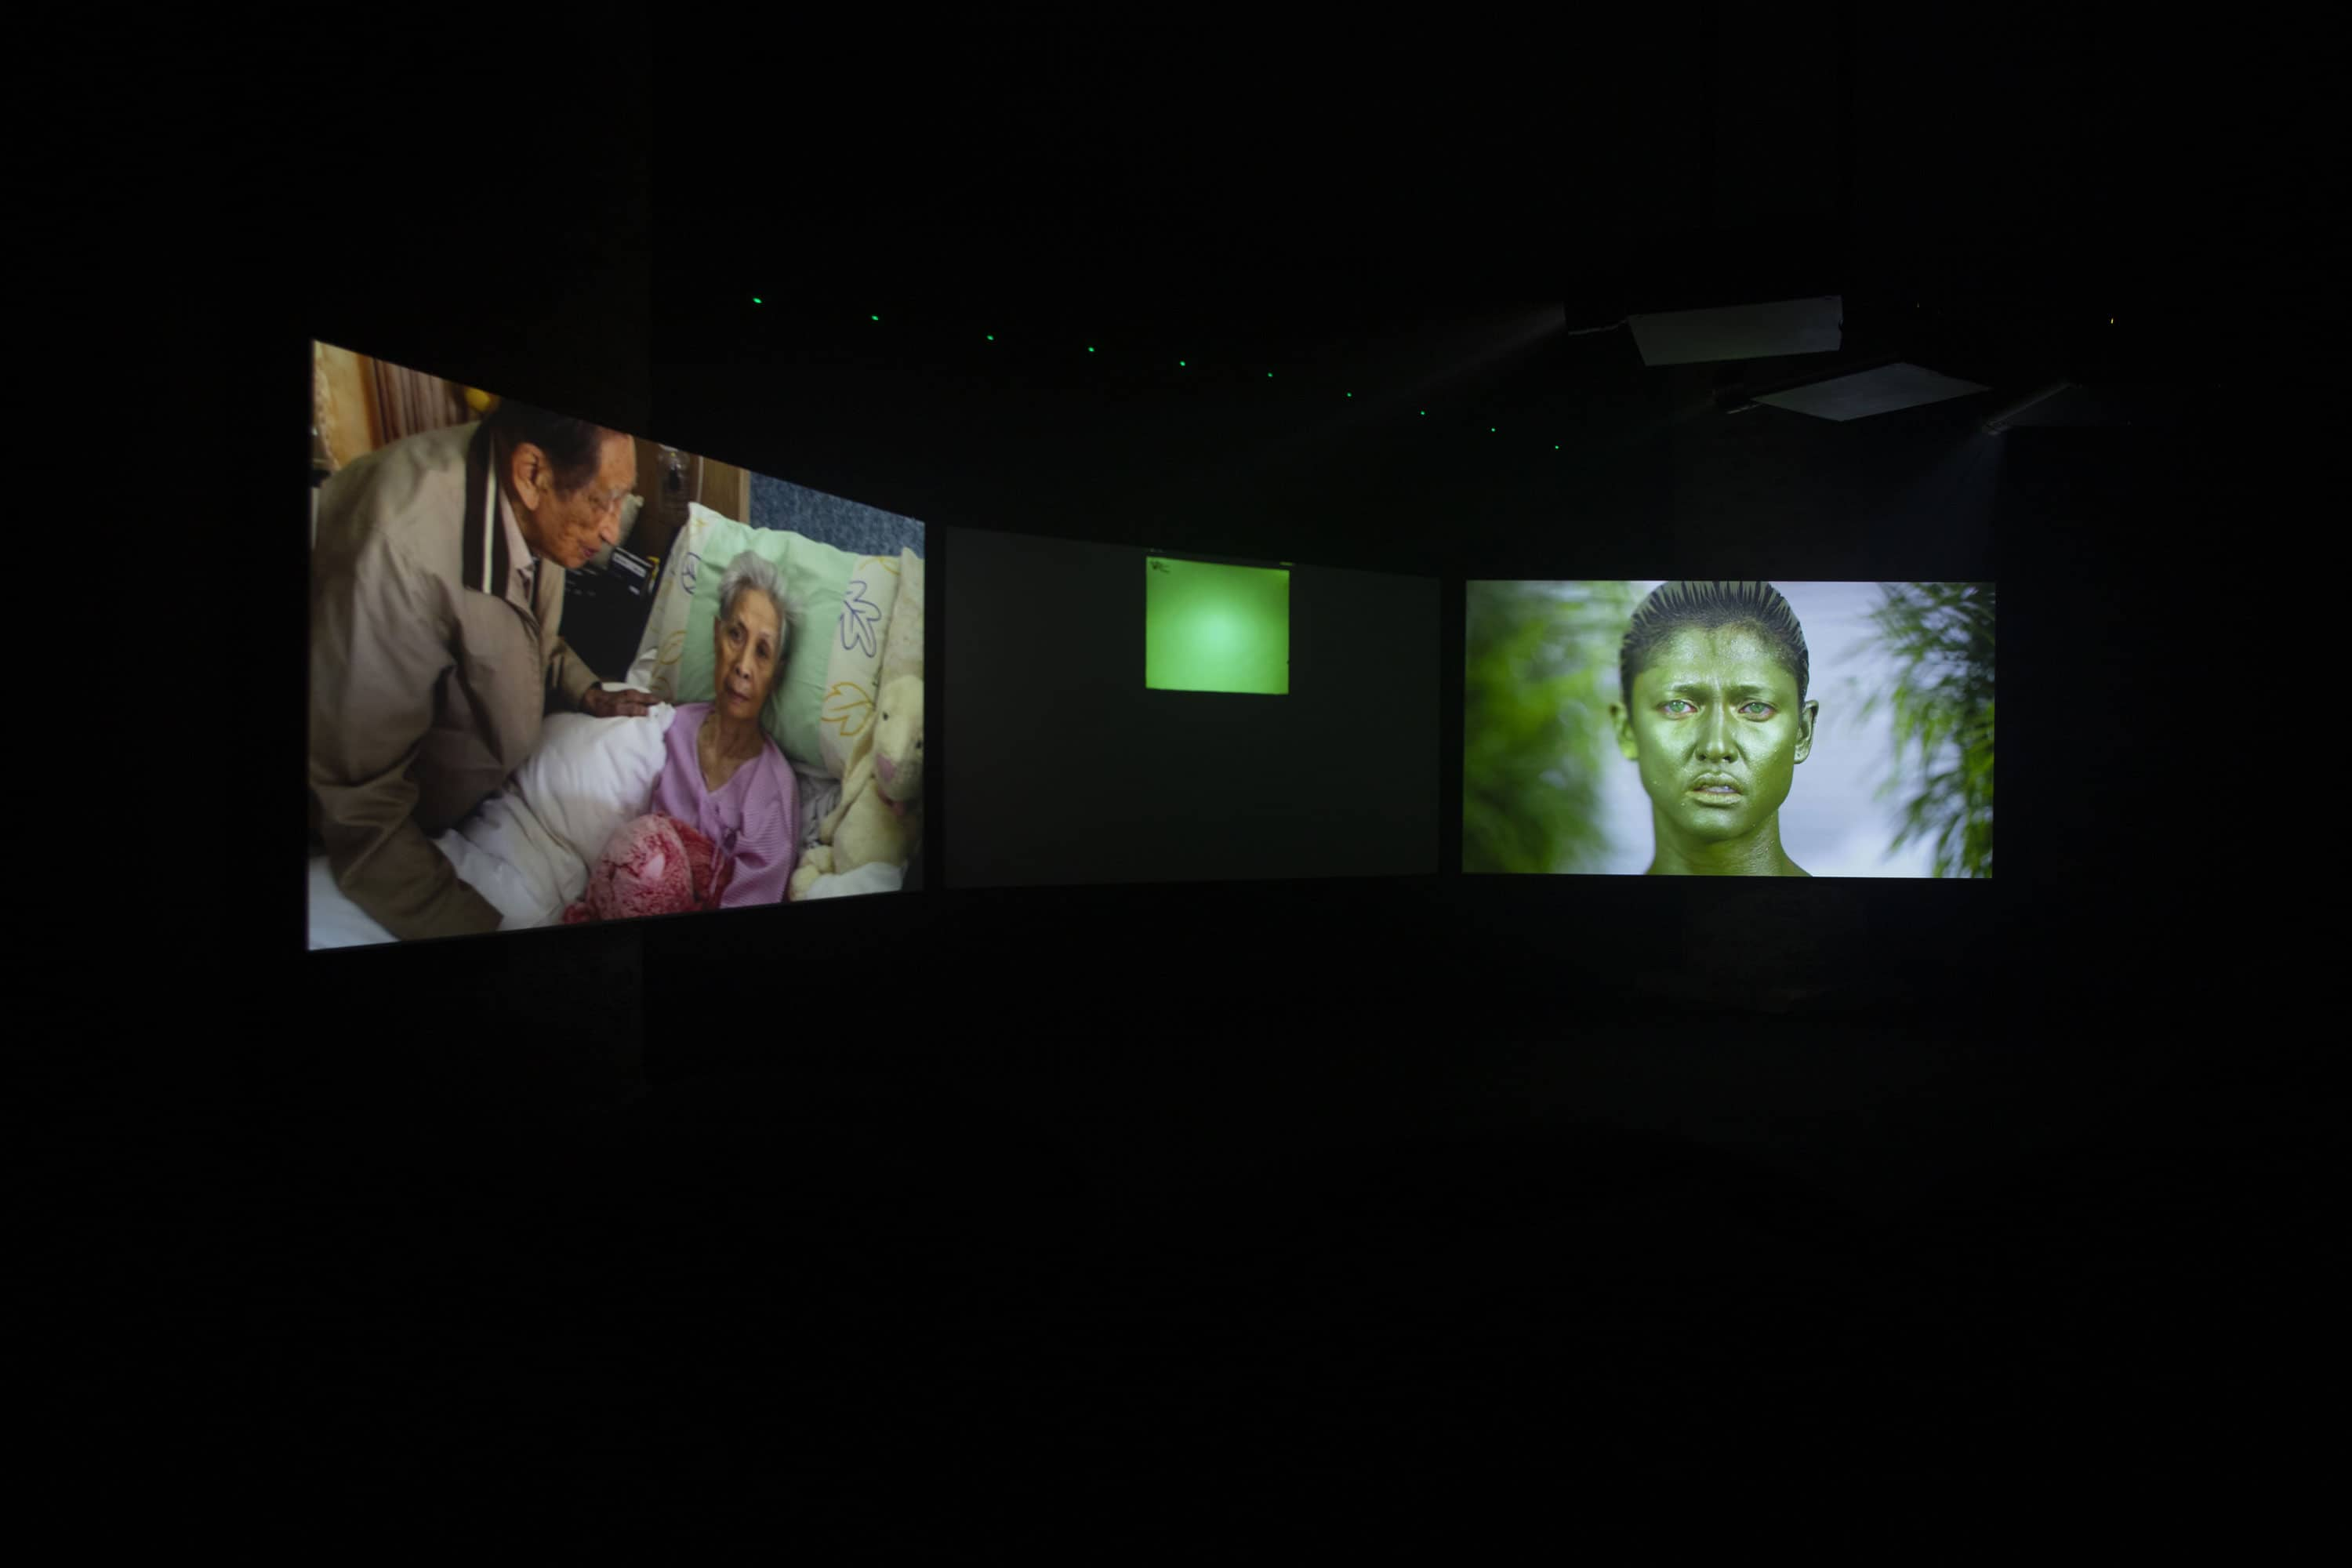 Korakrit Arunanondchai with Alex Gvojic, No history in a room filled with people with funny names 5, 2018, 3 channel video, mixed seashells, tree branches, laser harp, hazer, resin, LED lights, fabric pillows, 58th International Art Exhibition - La Biennale di Venezia, May You Live In Interesting Times, photo by Italo Rondinella, Courtesy: La Biennale di Venezia